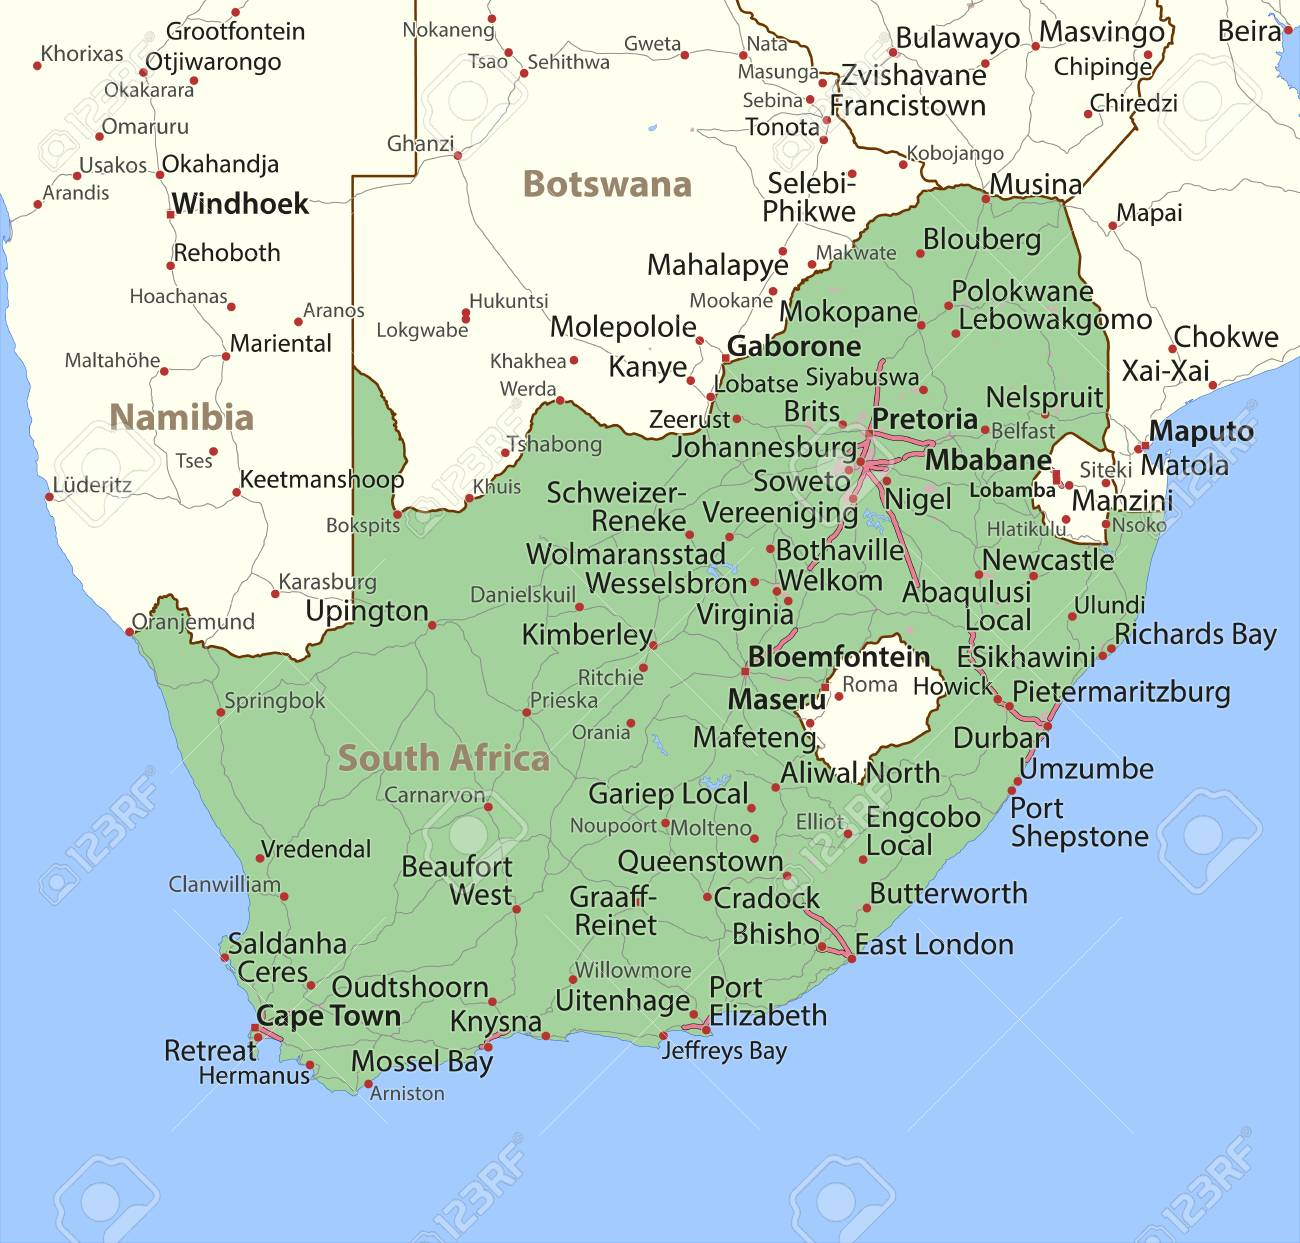 Map Of South Africa. Shows Country Borders, Urban Areas, Place